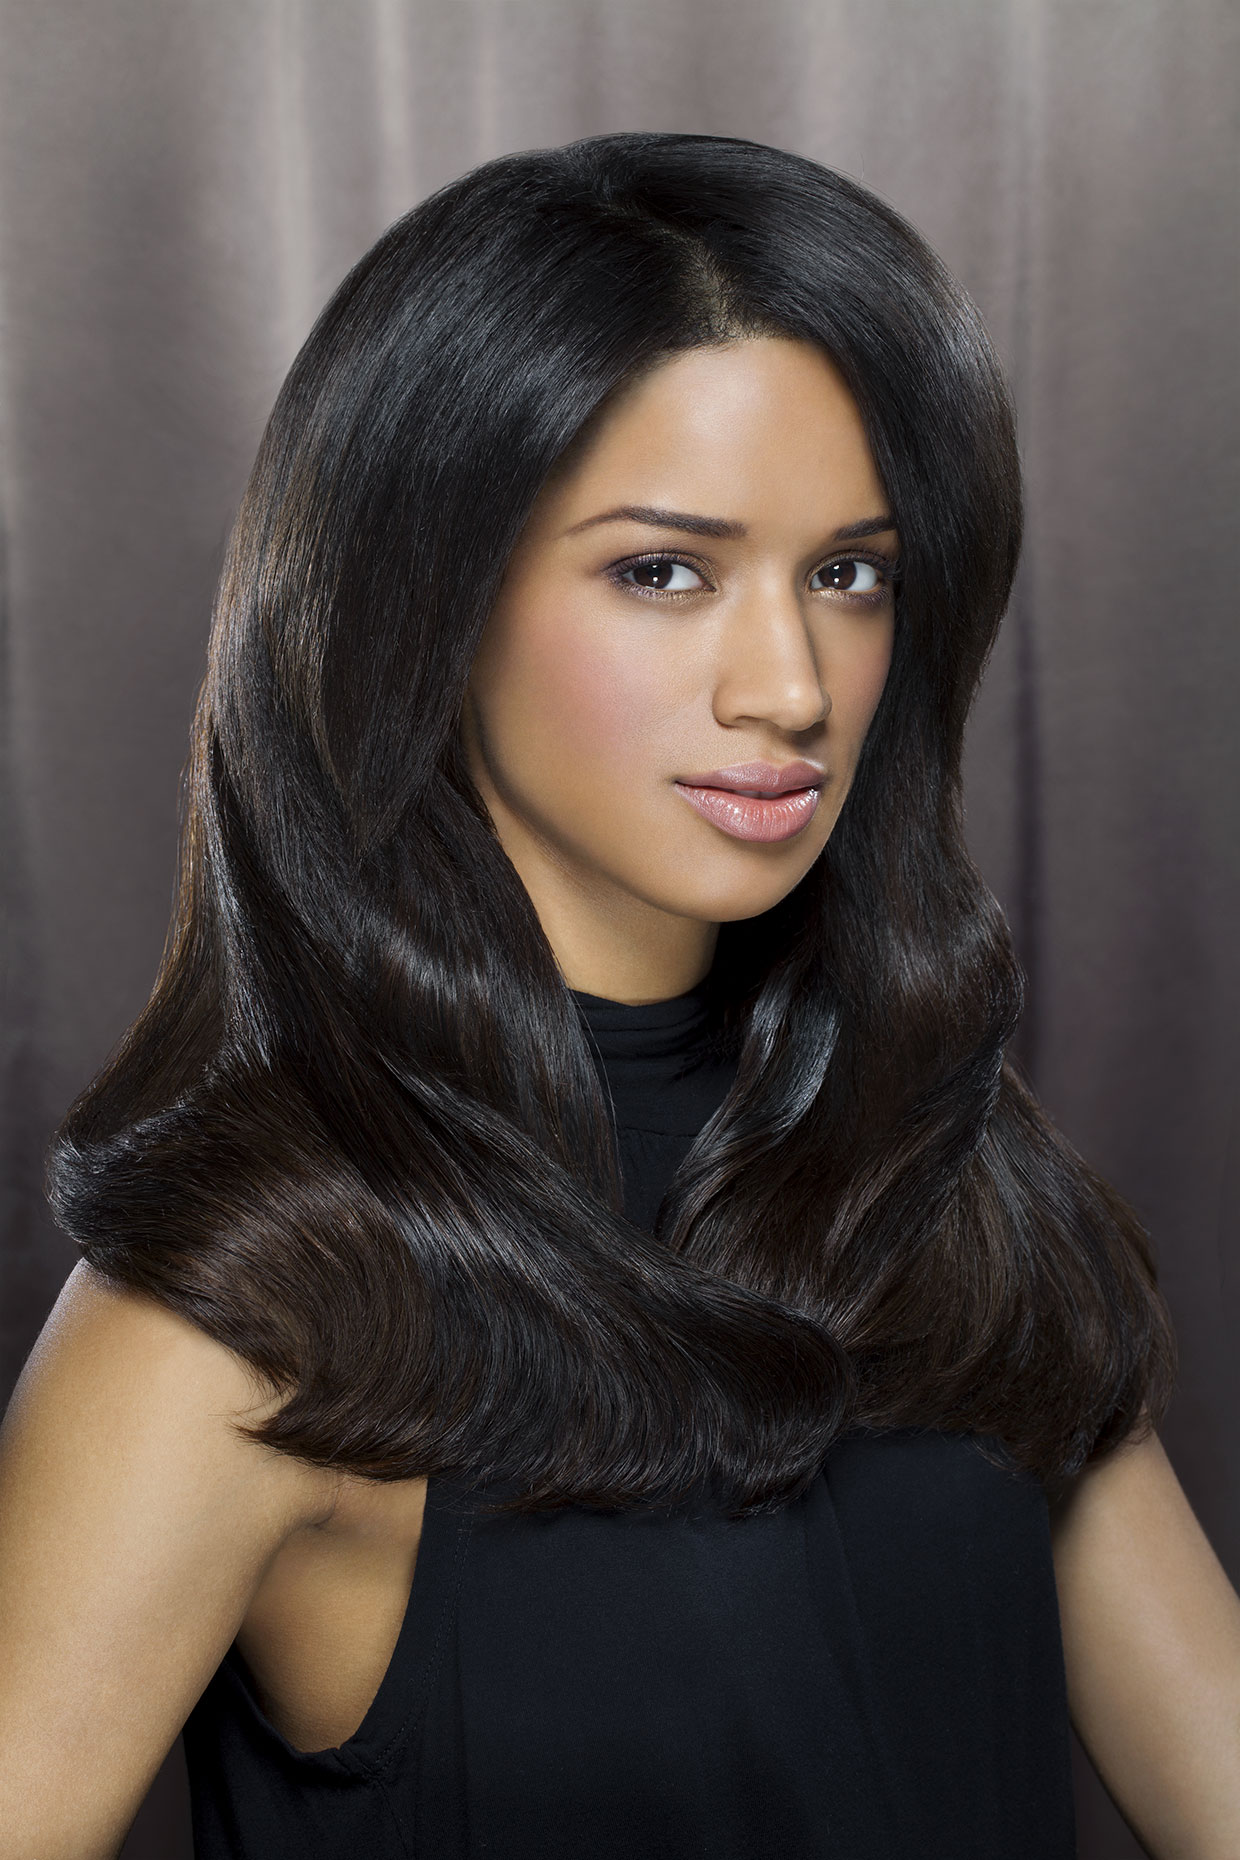 Young woman with shiny, luxurious hair.